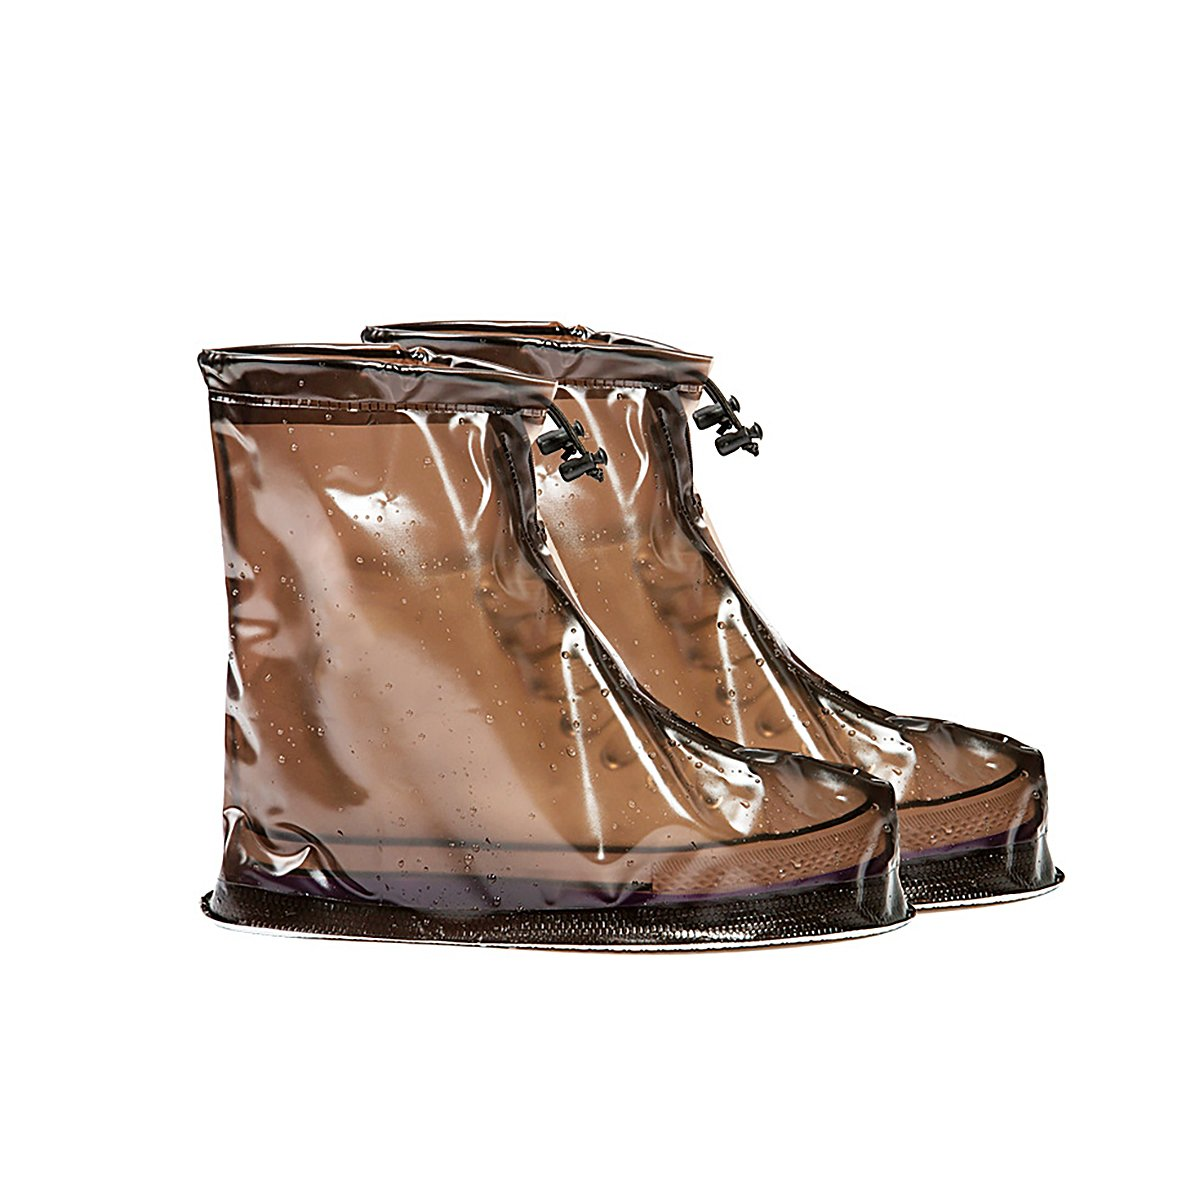 Brown Men and Women Models Waterproof Rain Boots Rainy Outdoor Rain Boots Travel Spare Waterproof Shoe Covers Easy To Carry M-1 by YoungJay (Image #1)